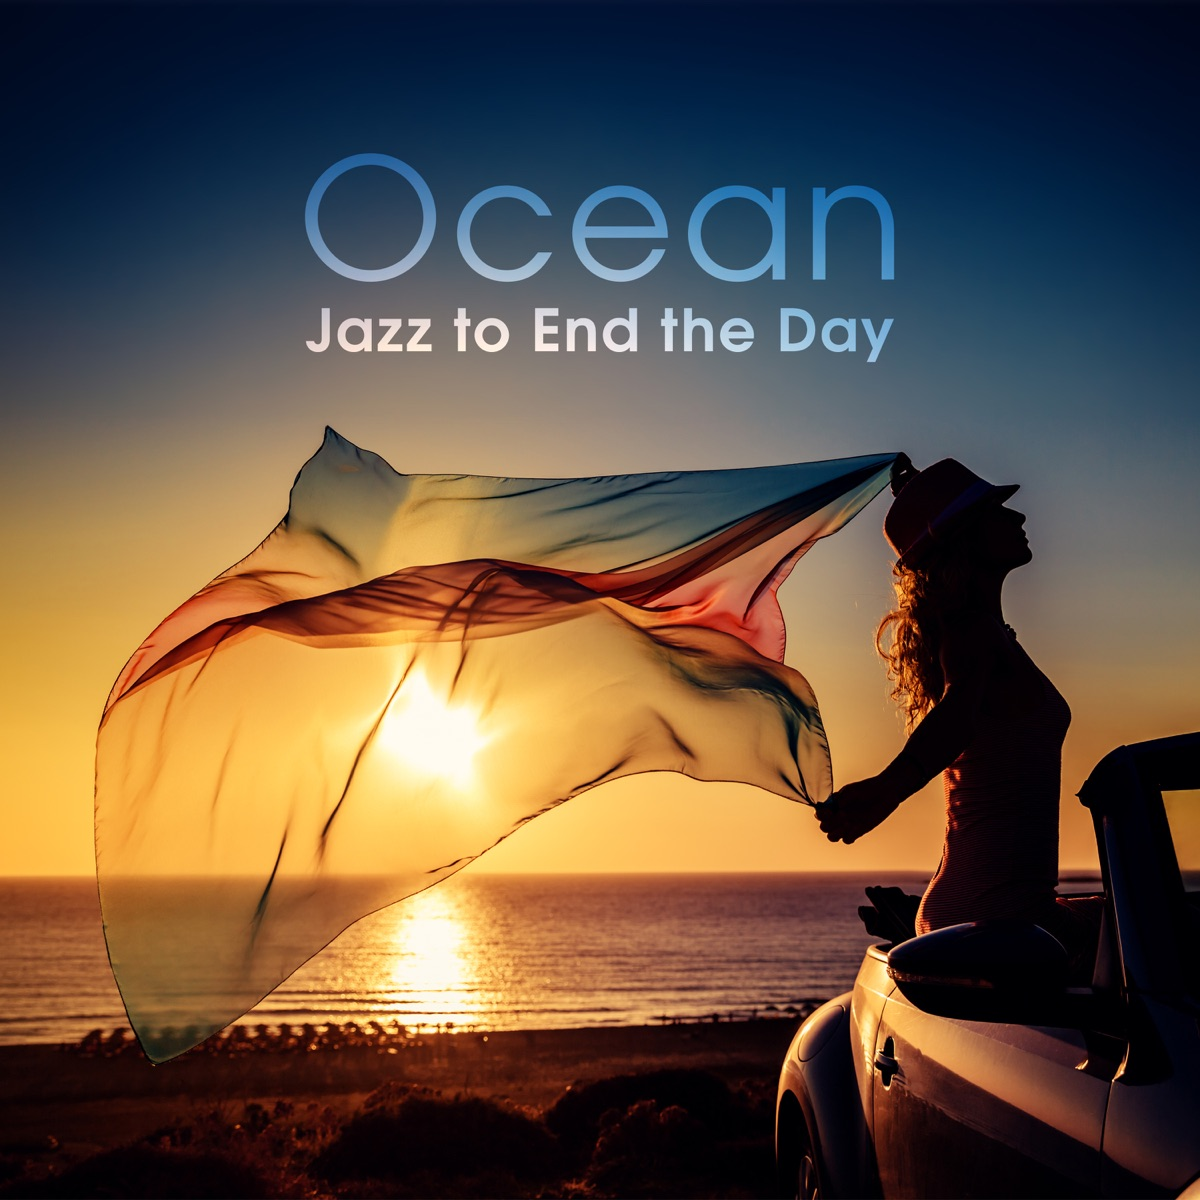 Ocean - Jazz to End the Day Album Cover by Piano Jazz Background